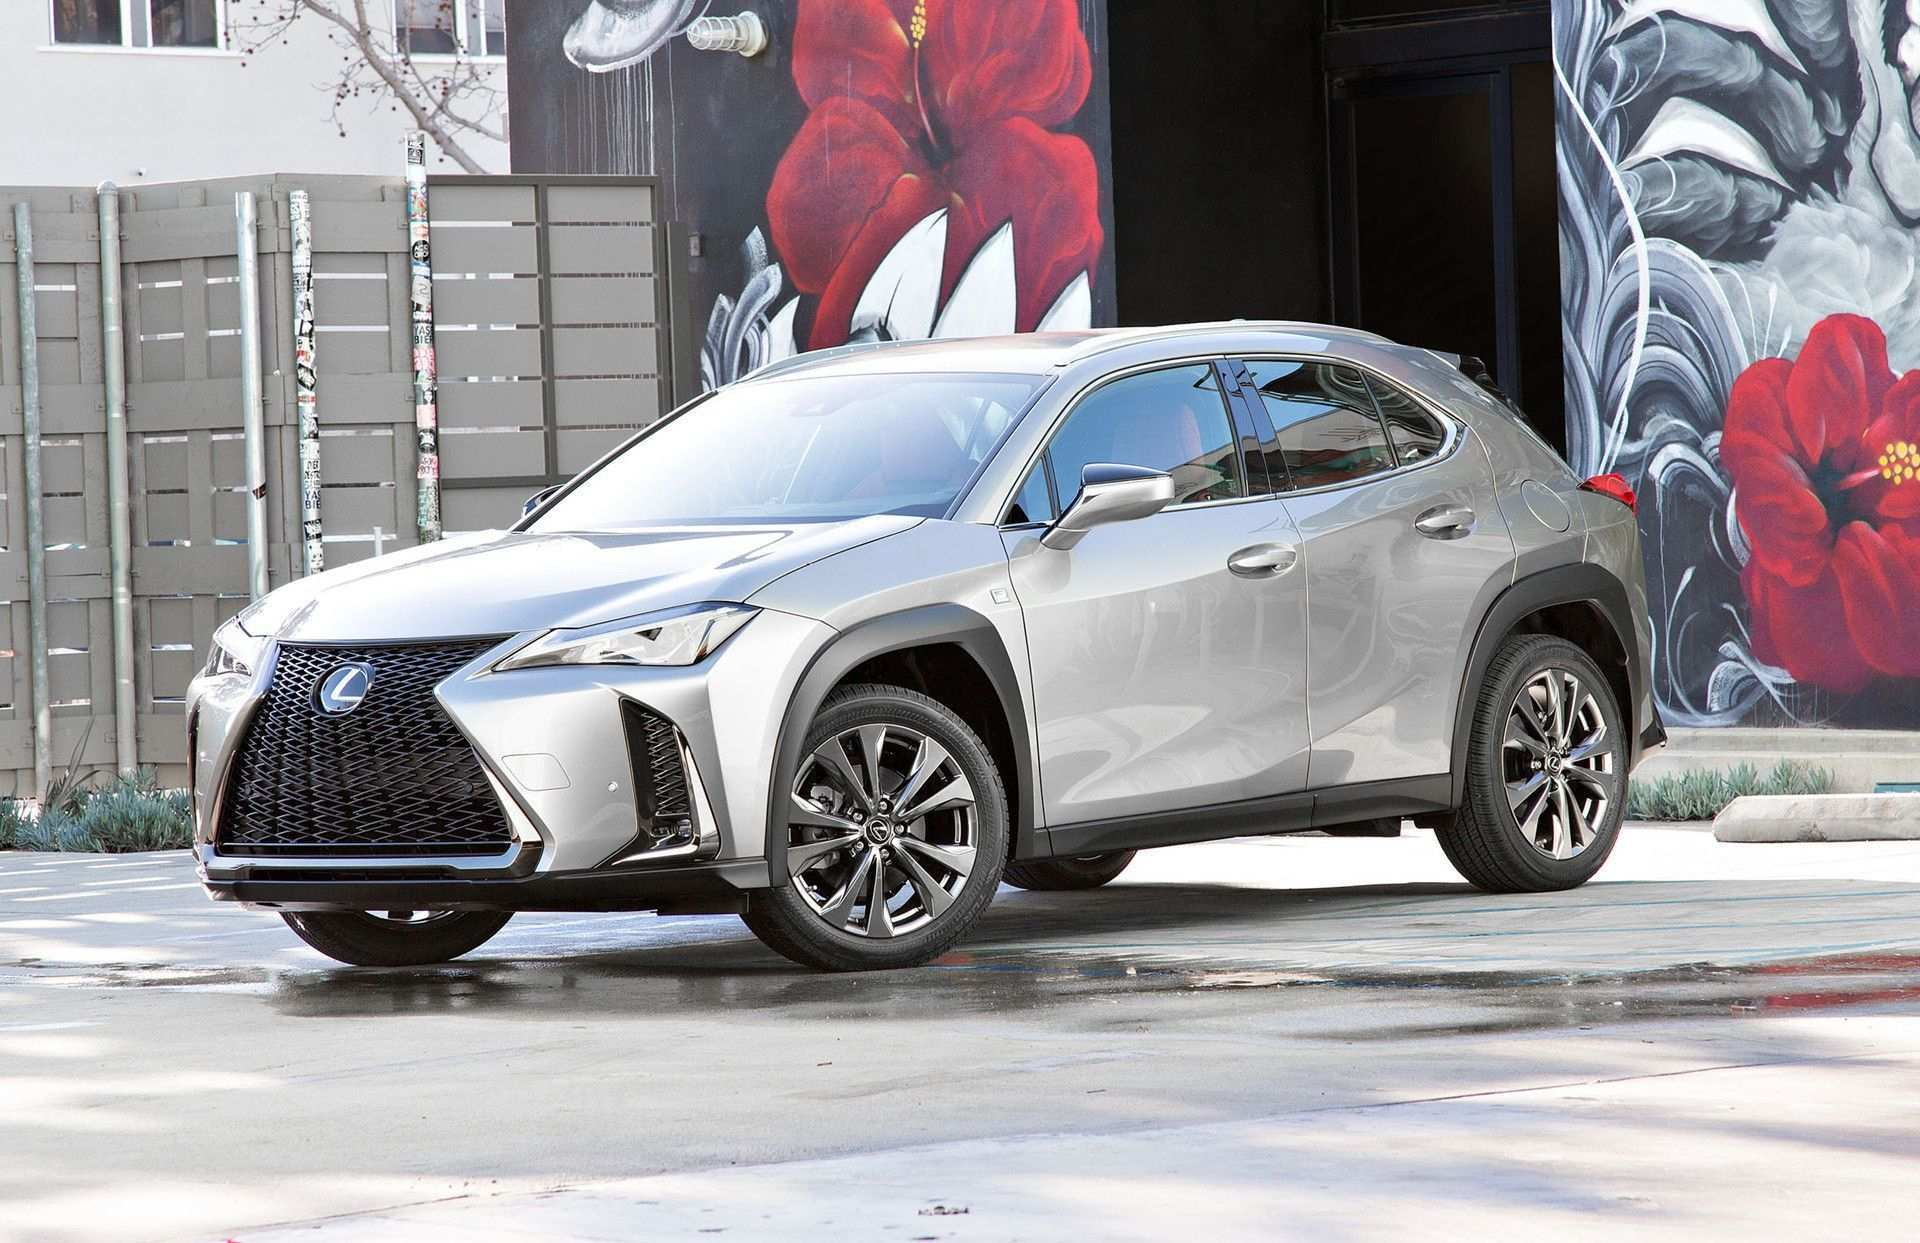 52 Great 2019 Lexus Ux Price Canada Performance with 2019 Lexus Ux Price Canada